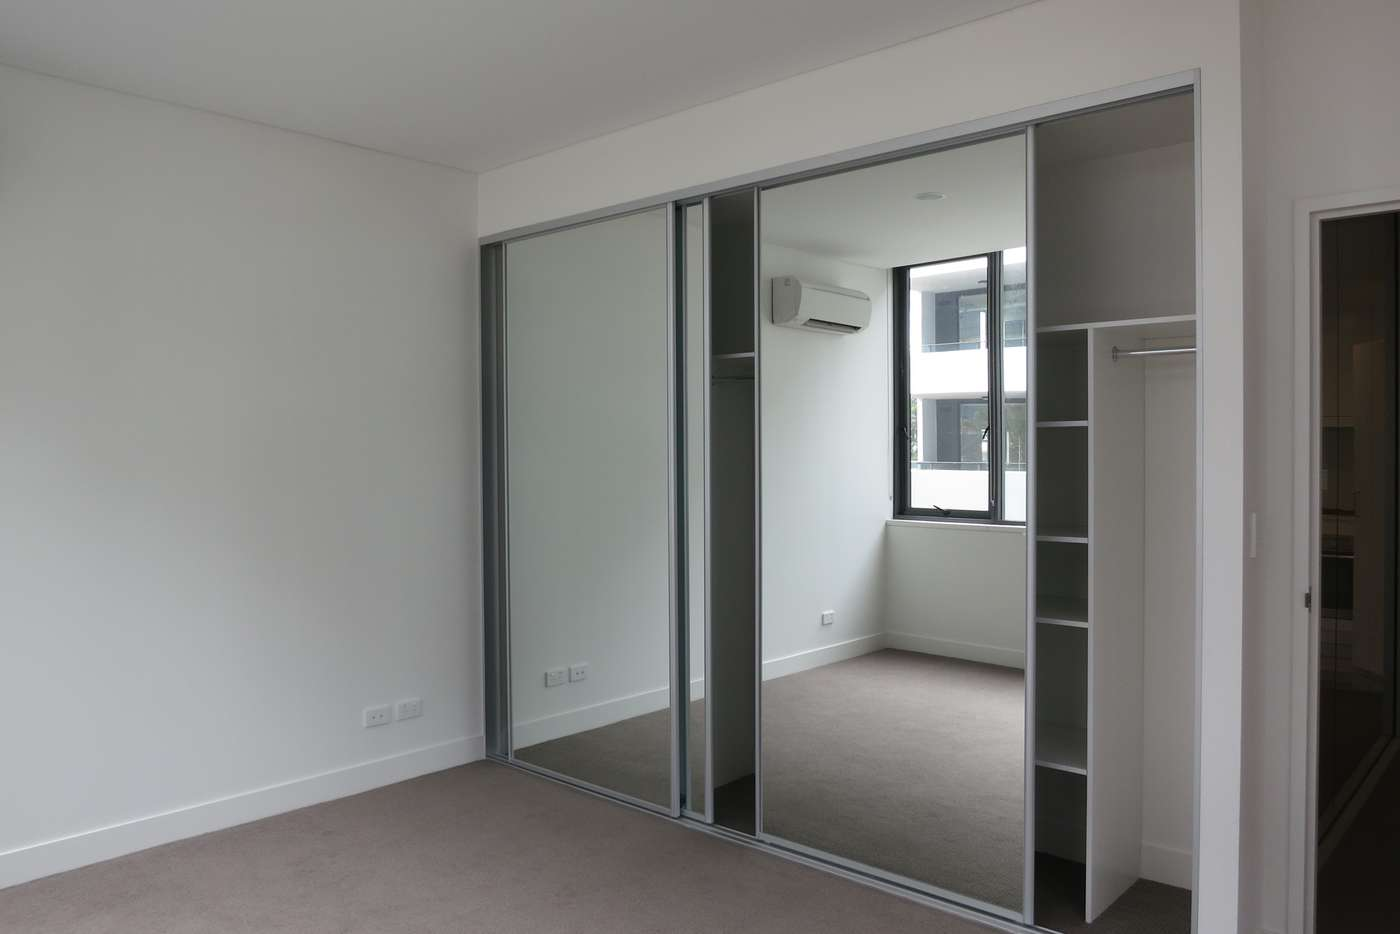 Sixth view of Homely apartment listing, 95/619-629 Gardeners Road, Mascot NSW 2020